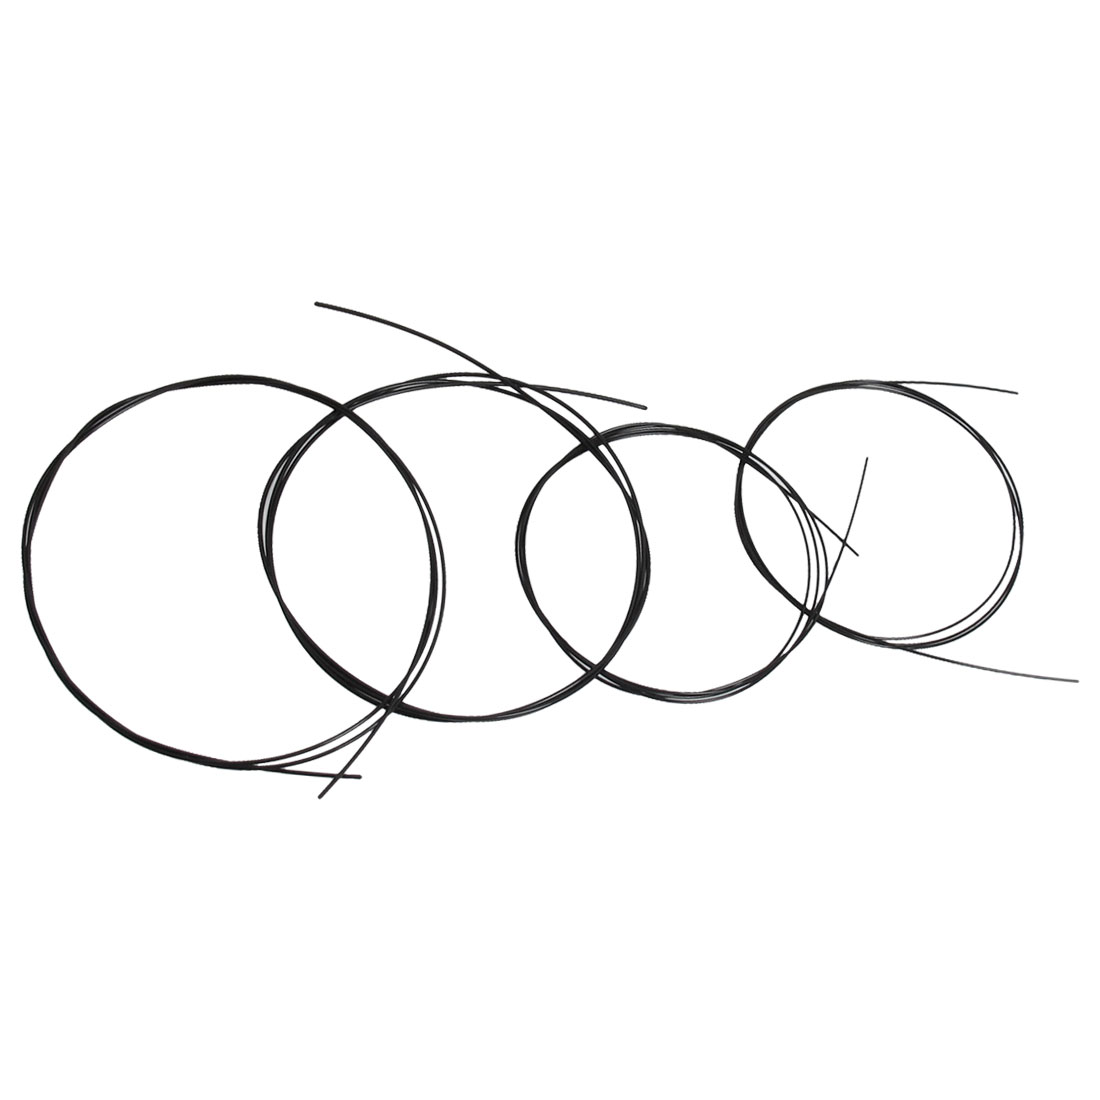 4 Pcs Beginners Replacement Steel Nylon Acoustic Guitar String Black